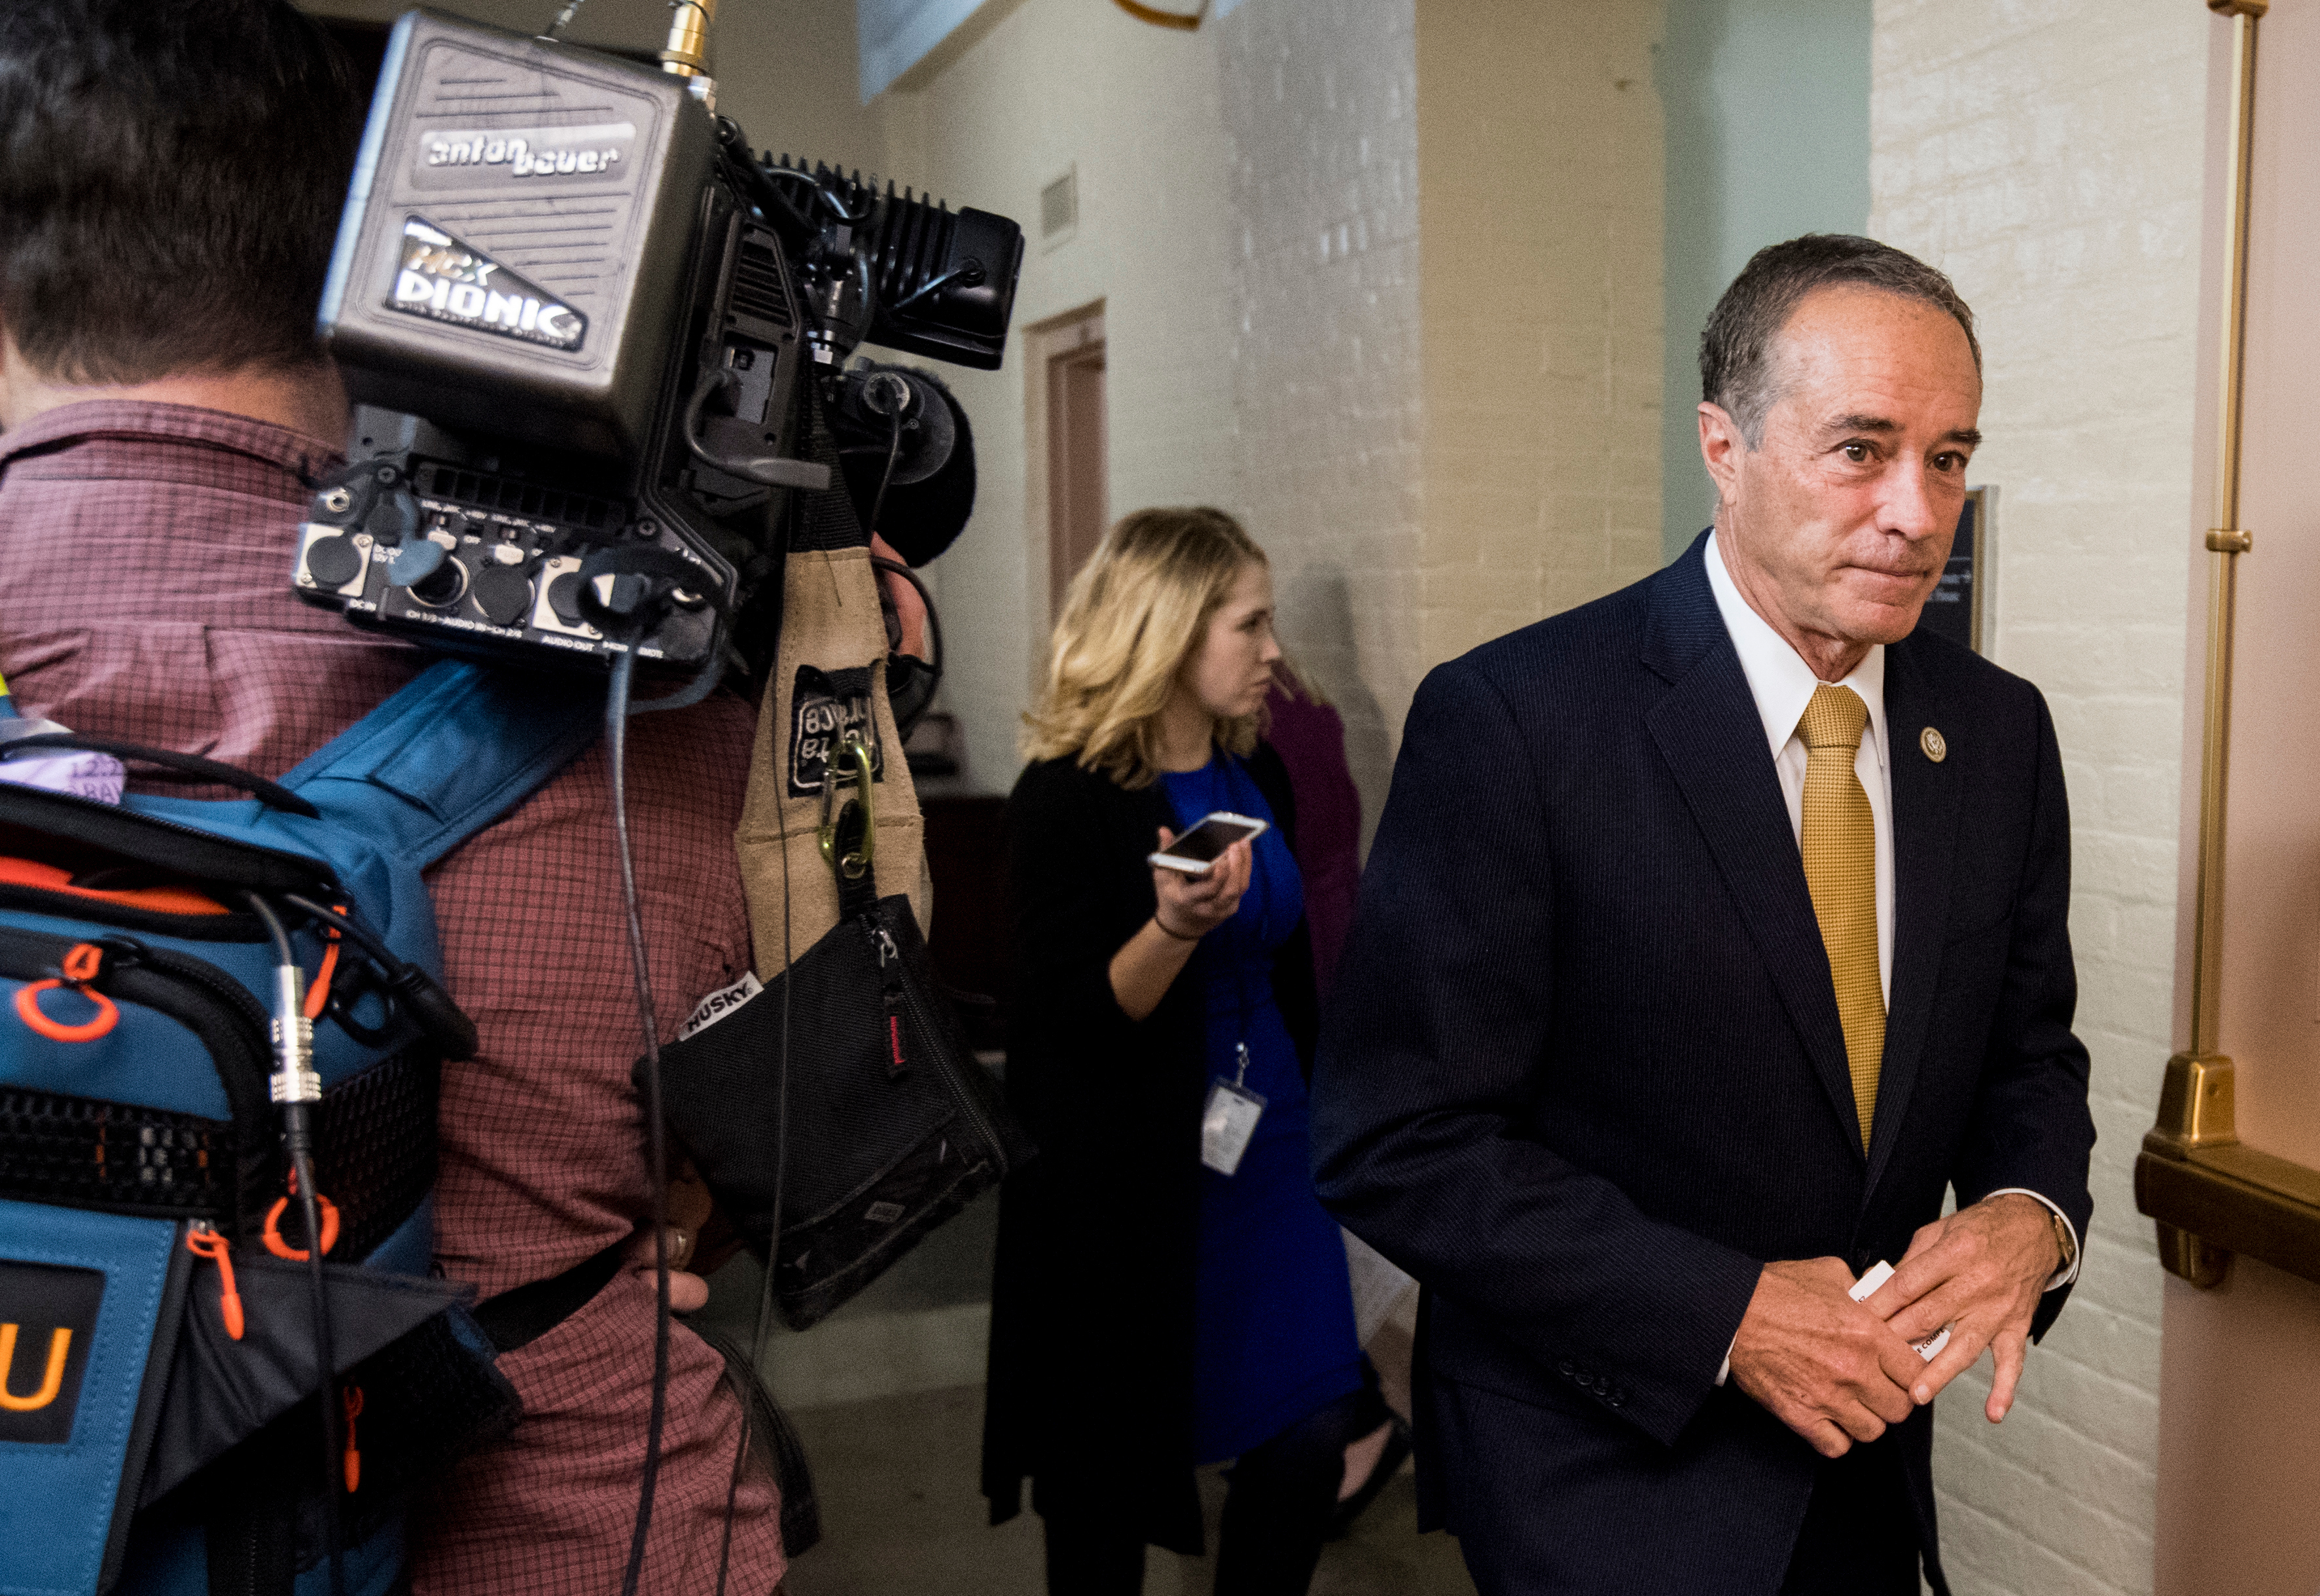 UNITED STATES - JANUARY 9: Rep. Chris Collins, R-N.Y., leaves the House Republican Conference meeting in the Capitol on Tuesday, Jan. 9, 2018. (Photo By Bill Clark/CQ Roll Call)